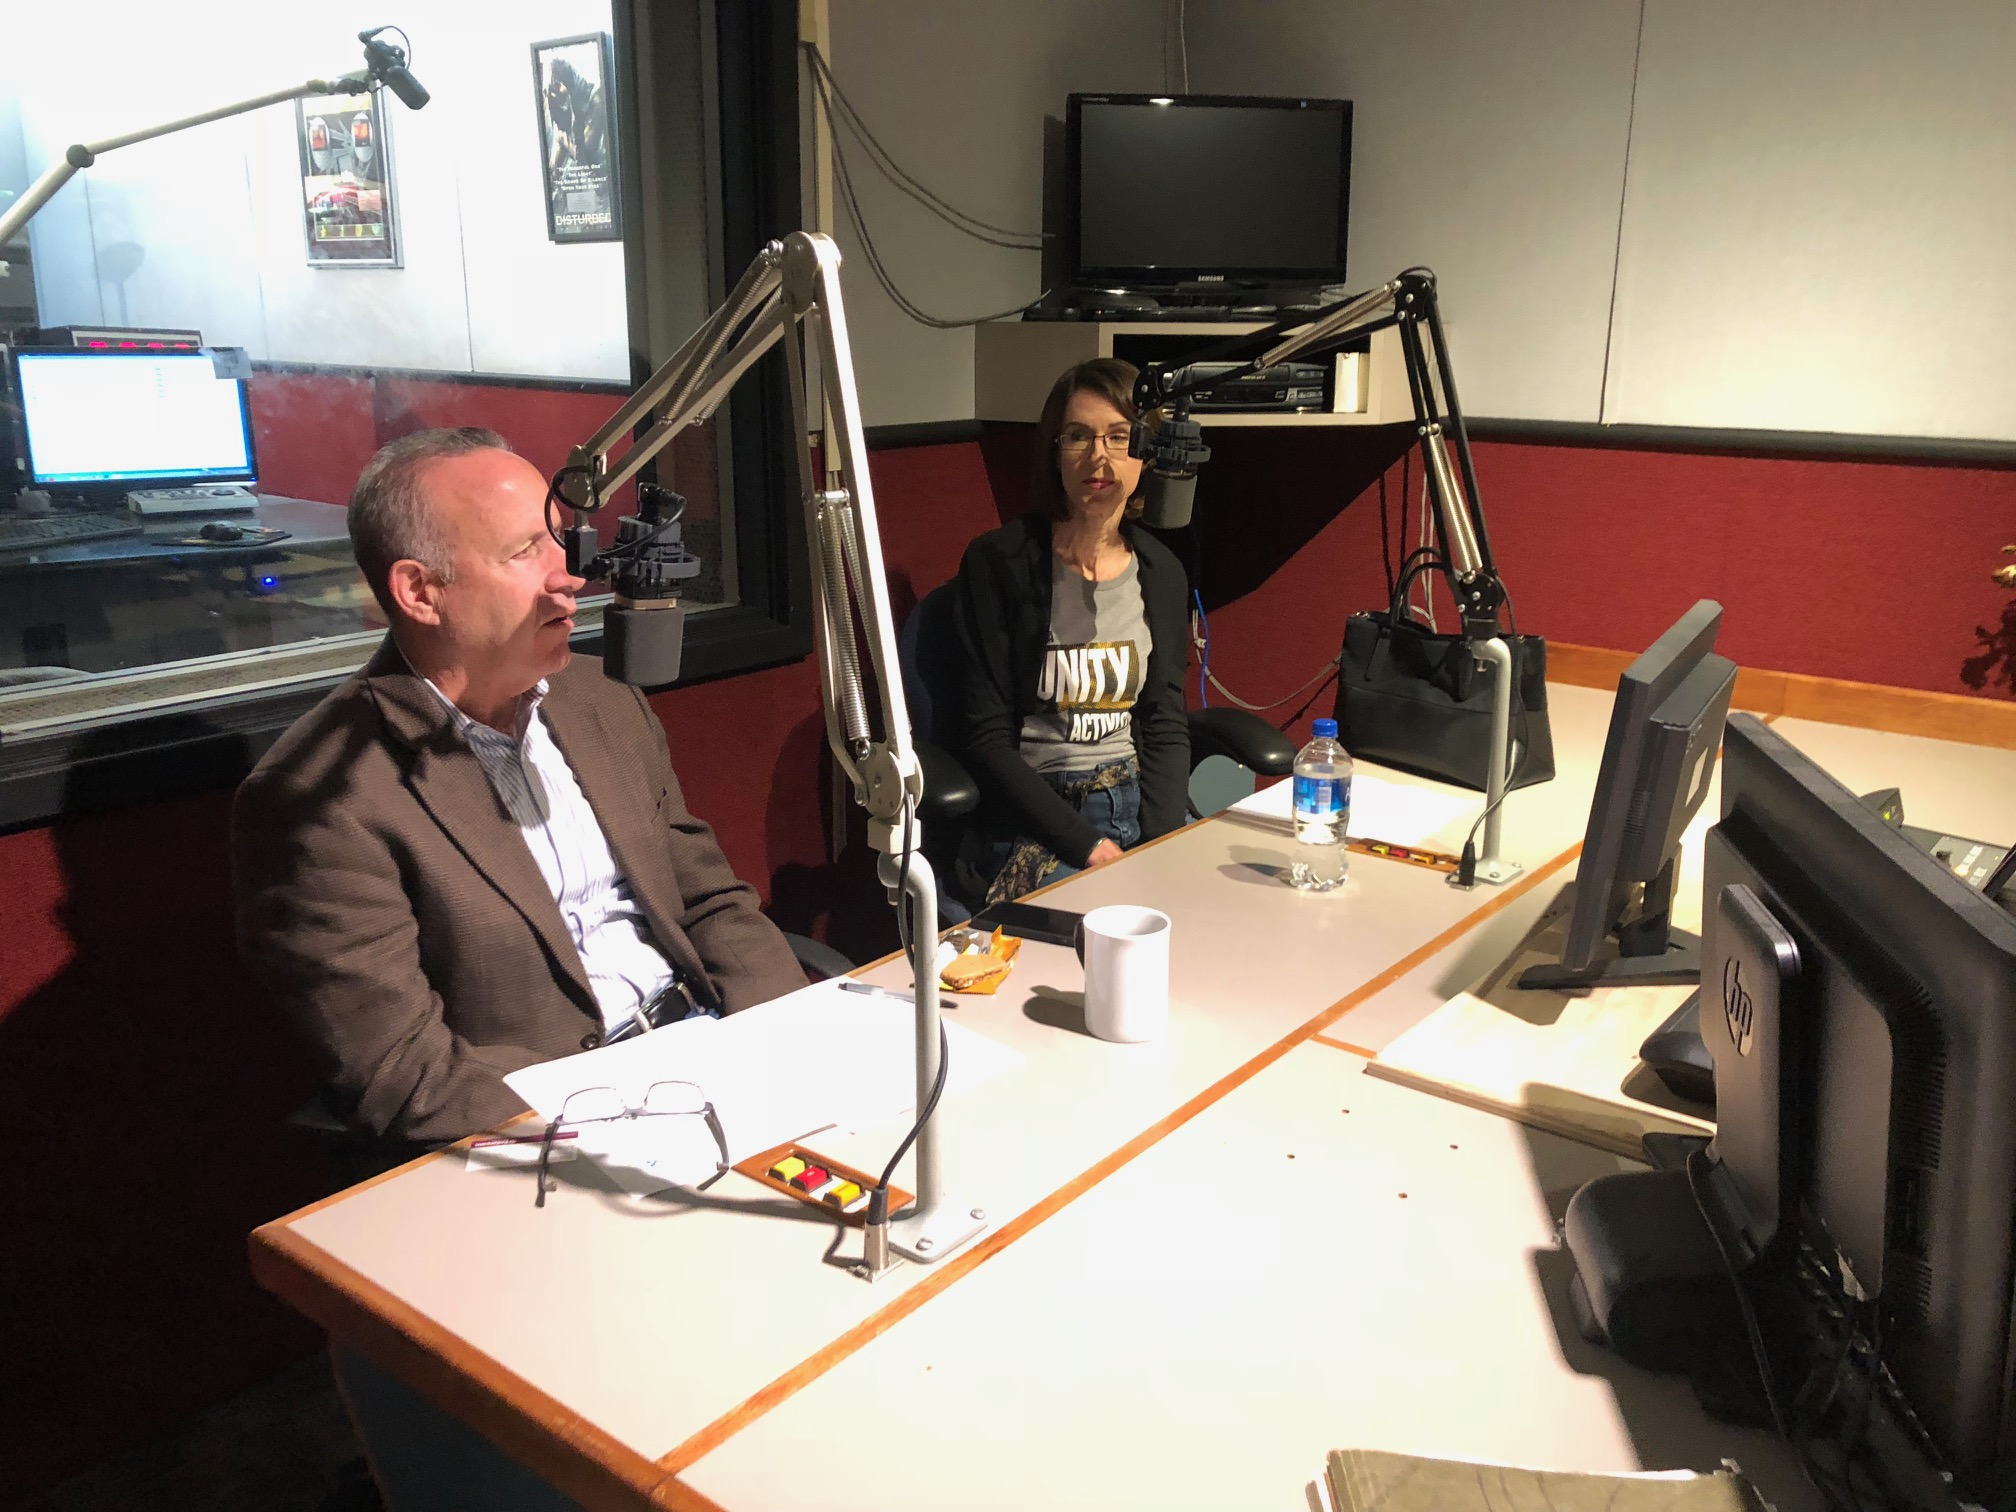 On Saturday, Mayor Darrell Steinberg and California Museum Executive Director Amanda Meeker sat down for an interview about the Unity Center with Entercom host Doug Thomas. Listen to it below.